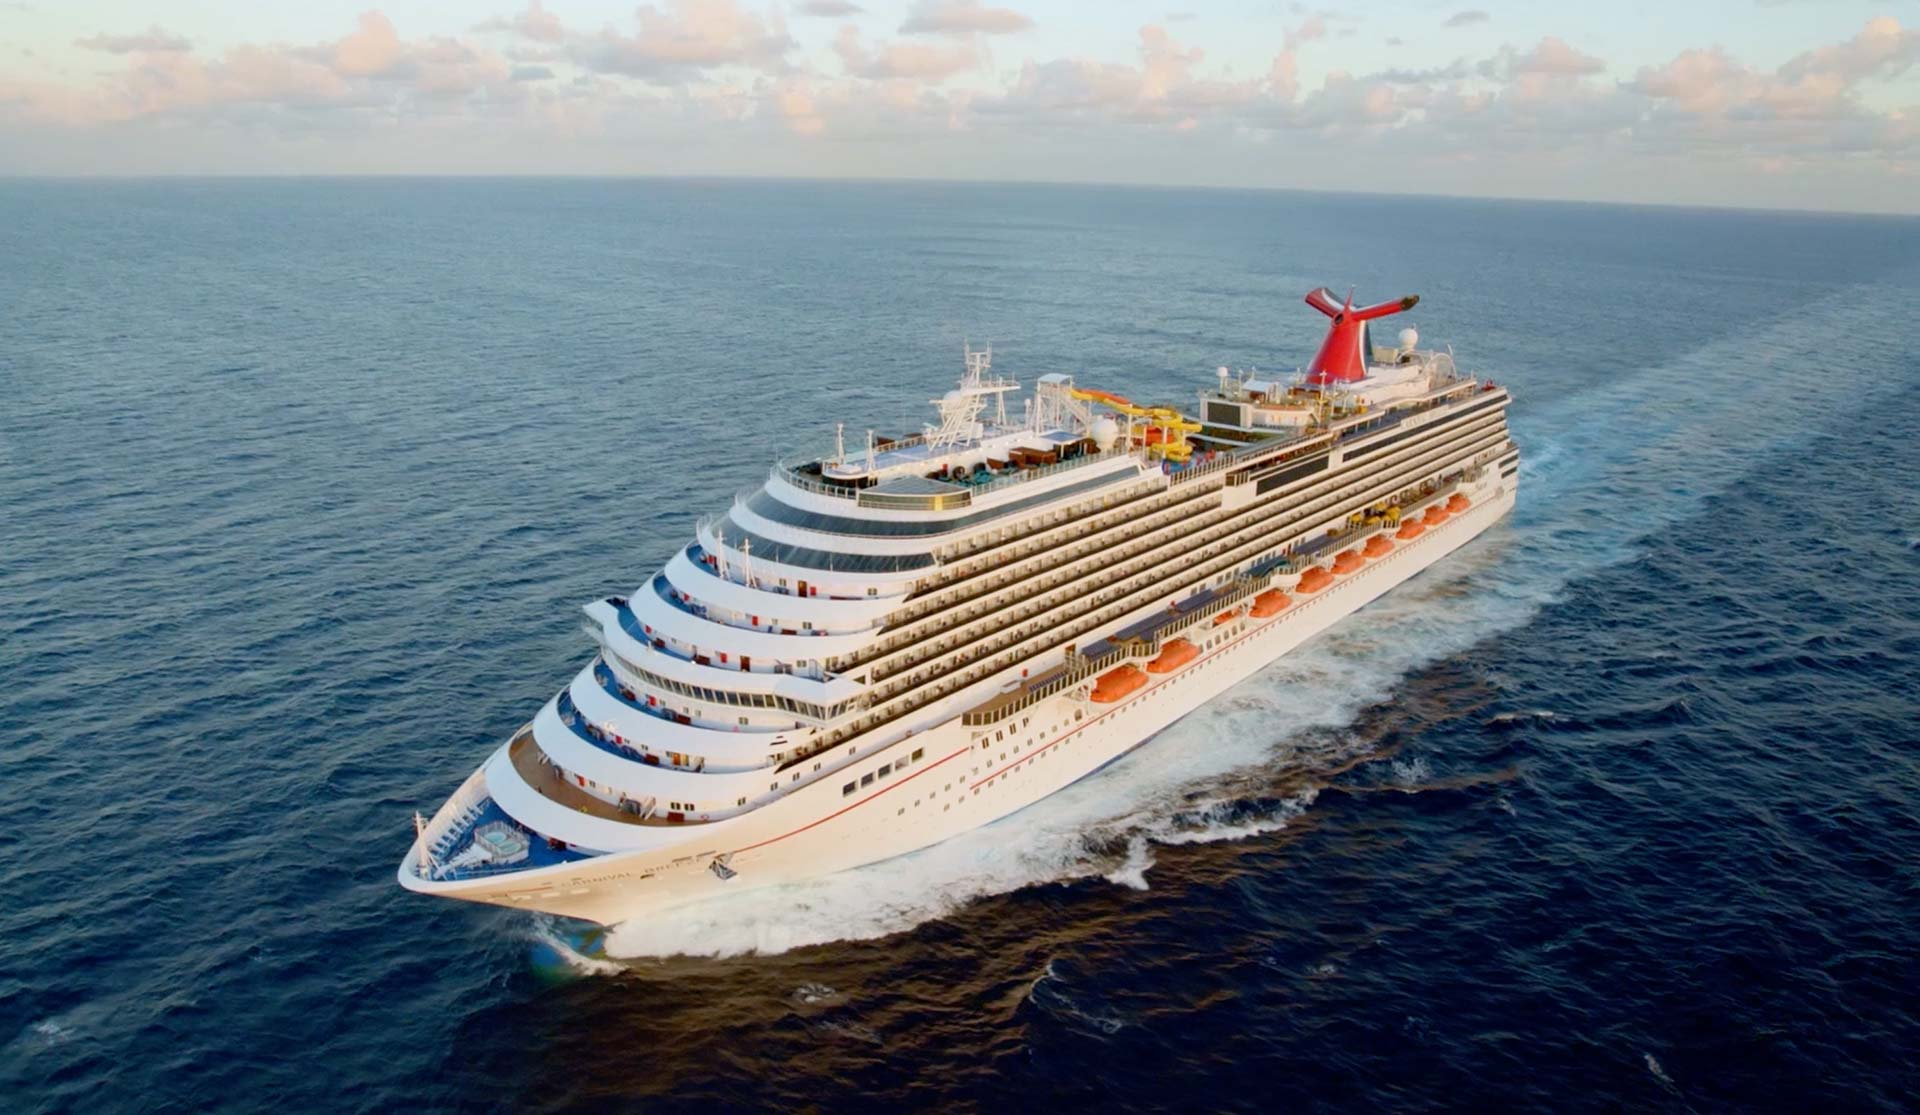 A Carnival cruise ship at sea